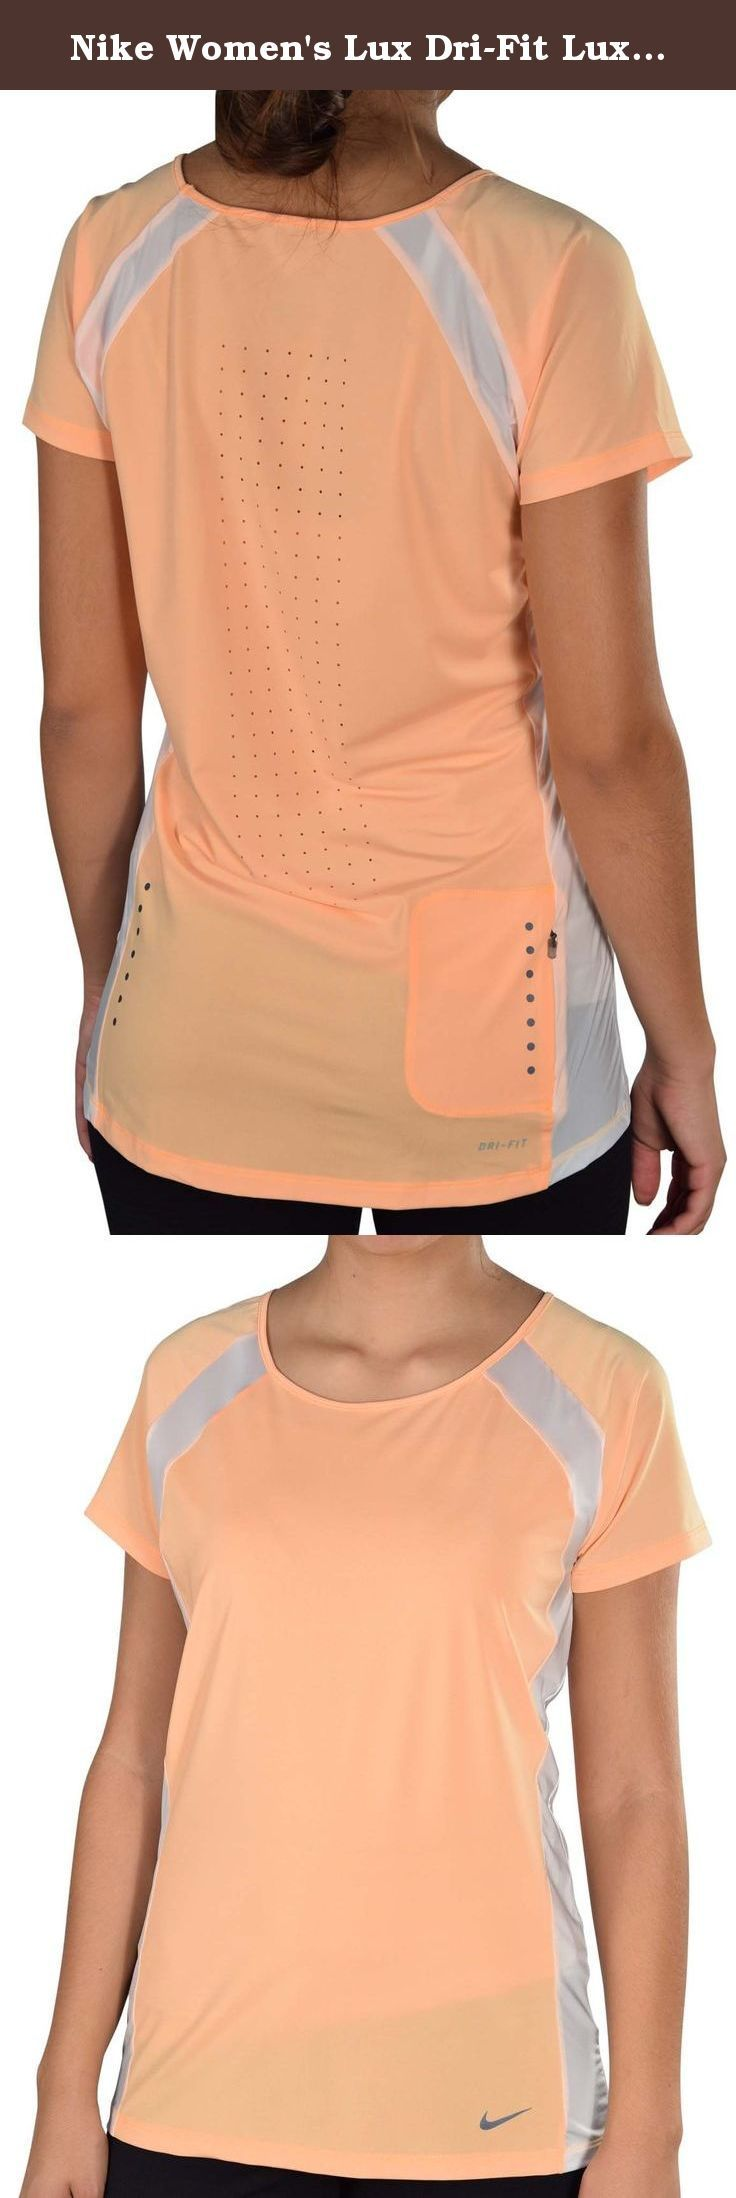 Nike Women's Lux Dri-Fit Lux Running Top-Orange-Medium. Nike Women's Lux Dri-Fit Lux Running Top The Nike Lux Women's Running Top is made with lightweight Dri-FIT fabric and features a perforated back panel for comfort and enhanced breathability. Item Features: Dri-FIT fabric to wick sweat away and help keep you dry and comfortable Scoop neck for comfort and a flattering fit. Raglan sleeves and contrast stretch panels for natural range of motion Laser-cut perforations at back for enhanced...